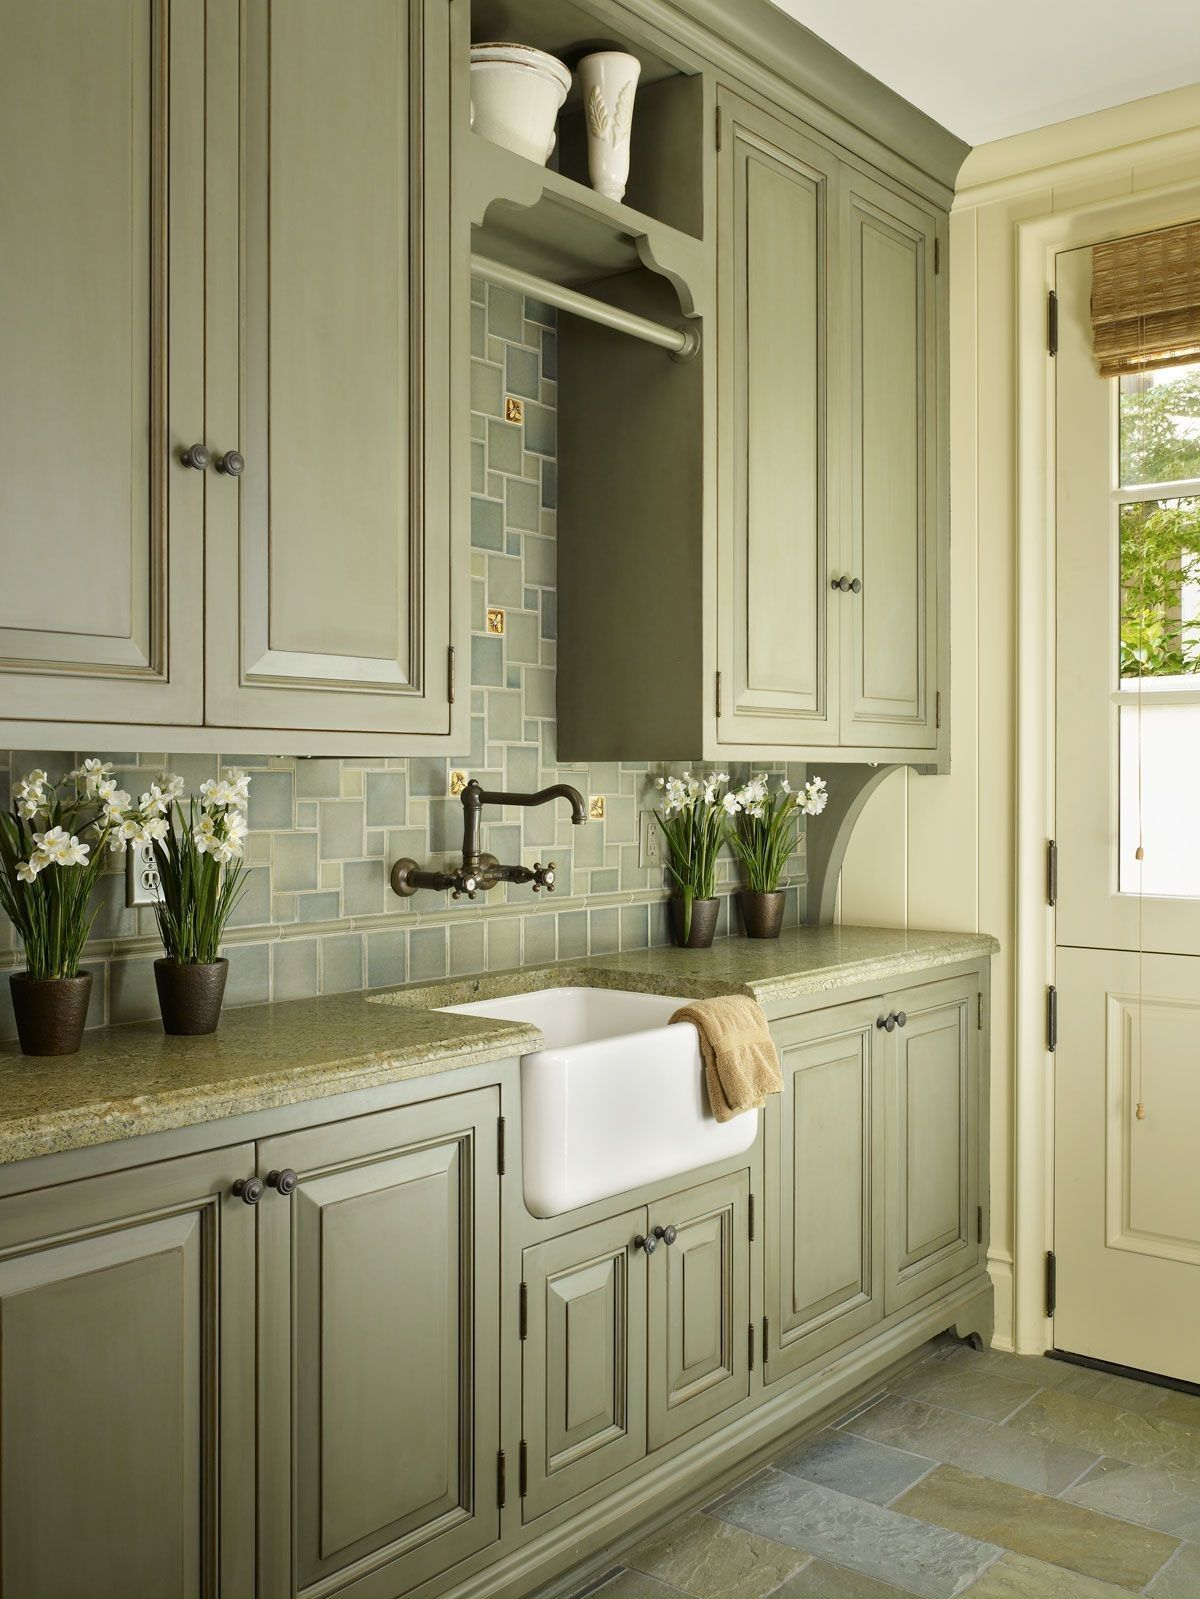 Most Popular Country kitchen ideas for small homes